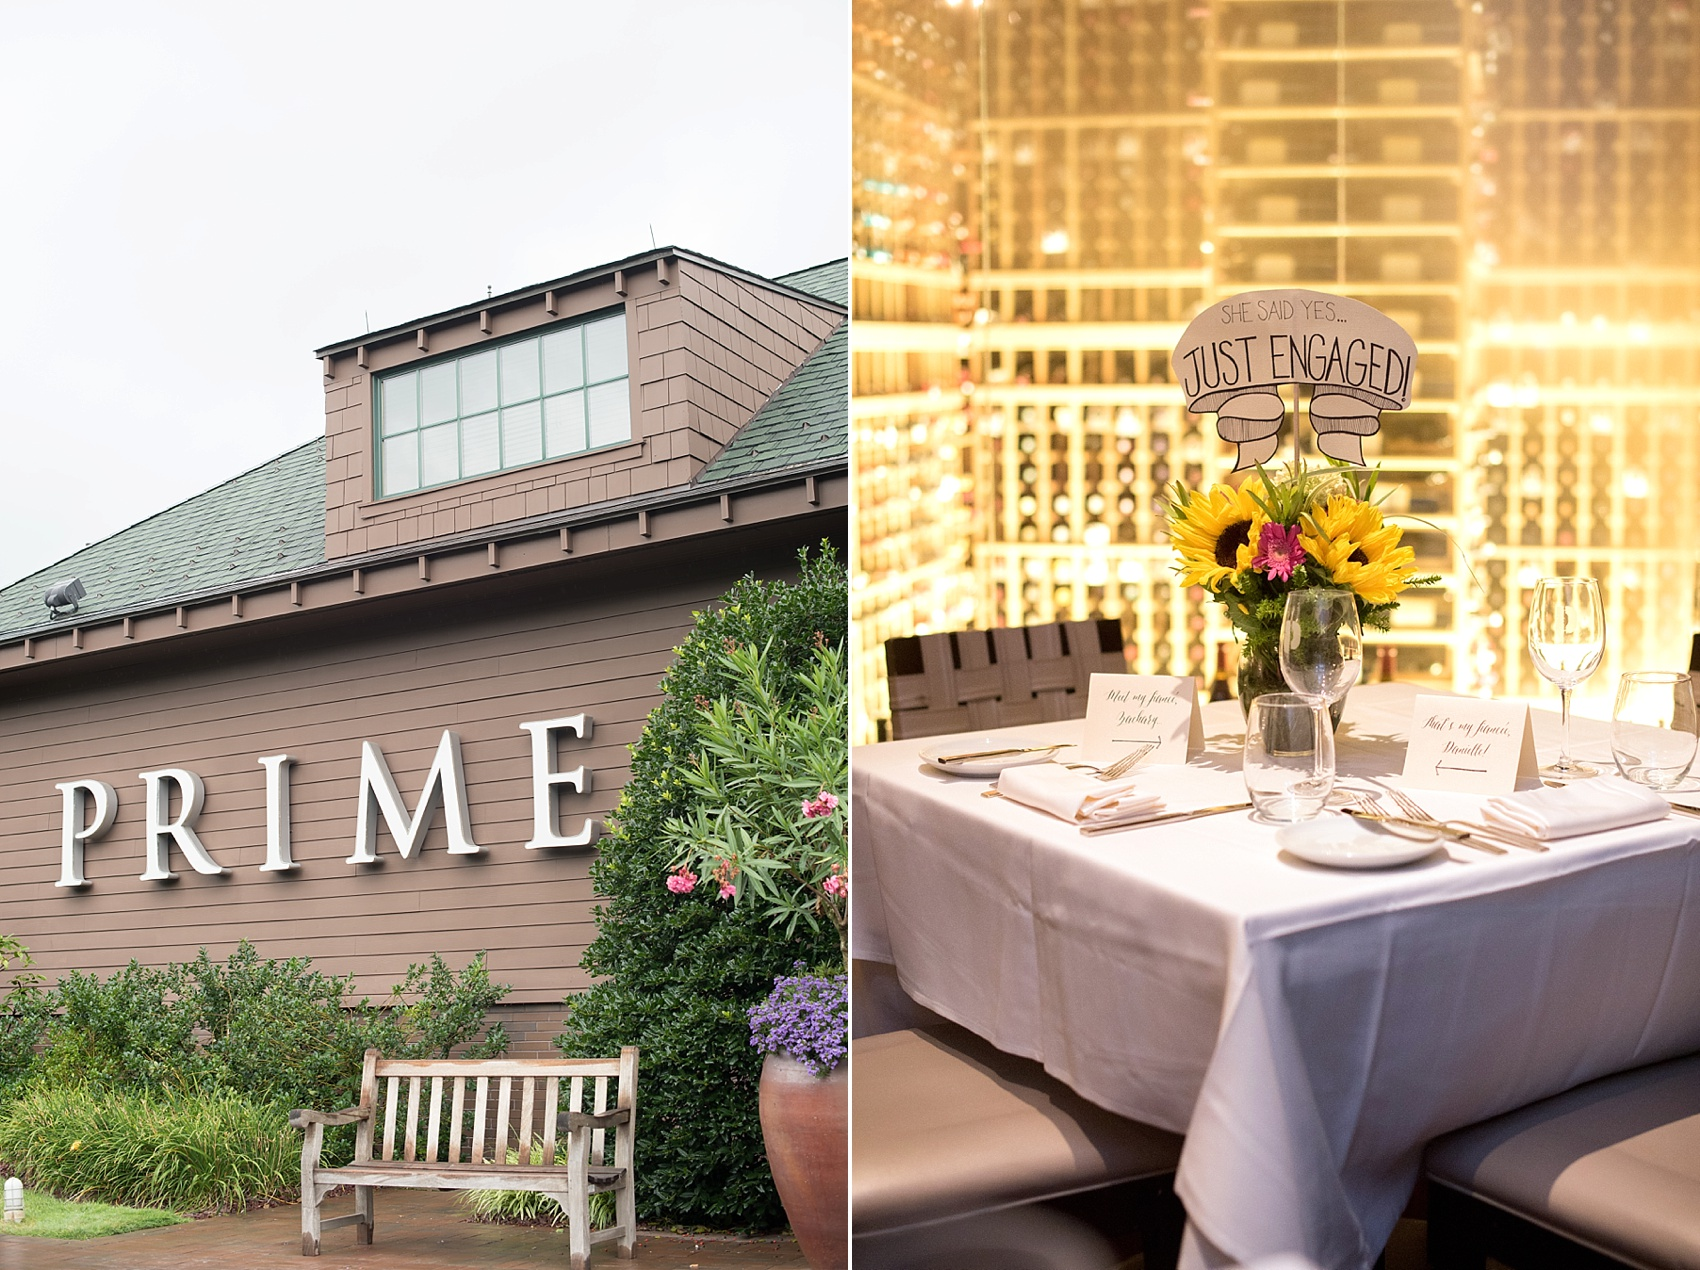 Long Island proposal ideas at Prime restaurant. Private wine cellar dining room. Photos by Mikkel Paige Photography, Long Island wedding photographer.